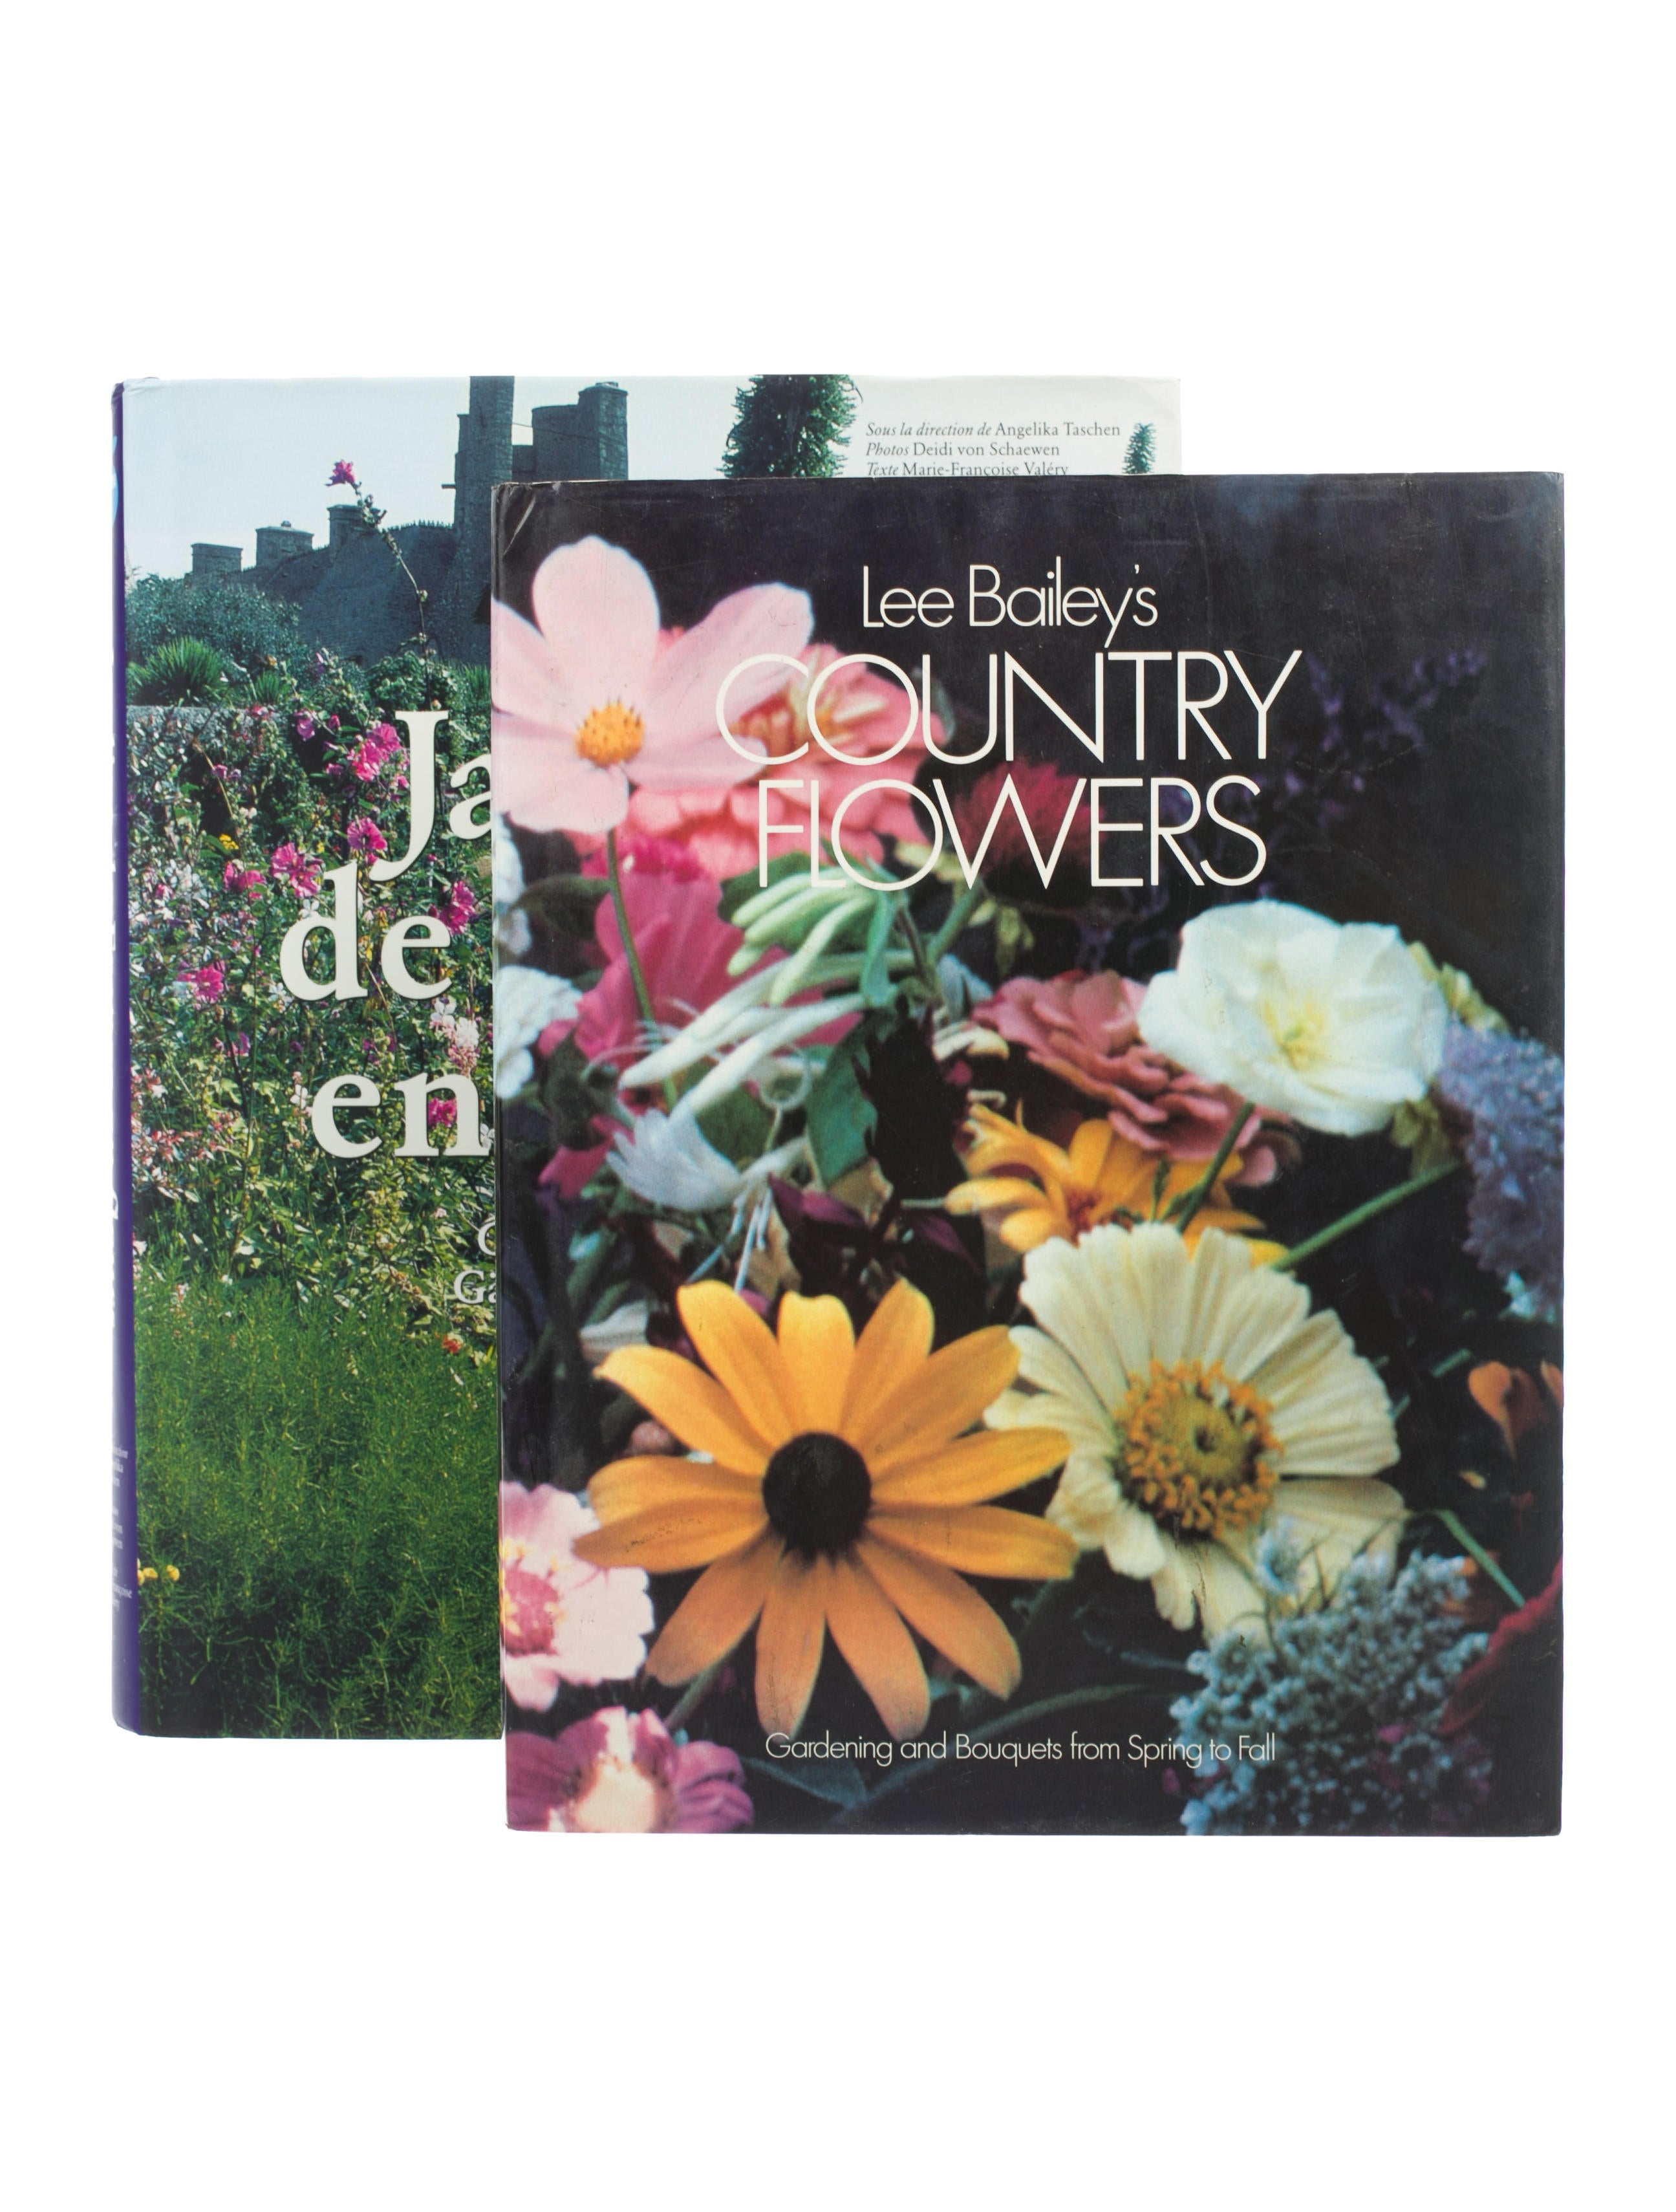 2 piece garden book set decor and accessories for Jardin francais jewelry